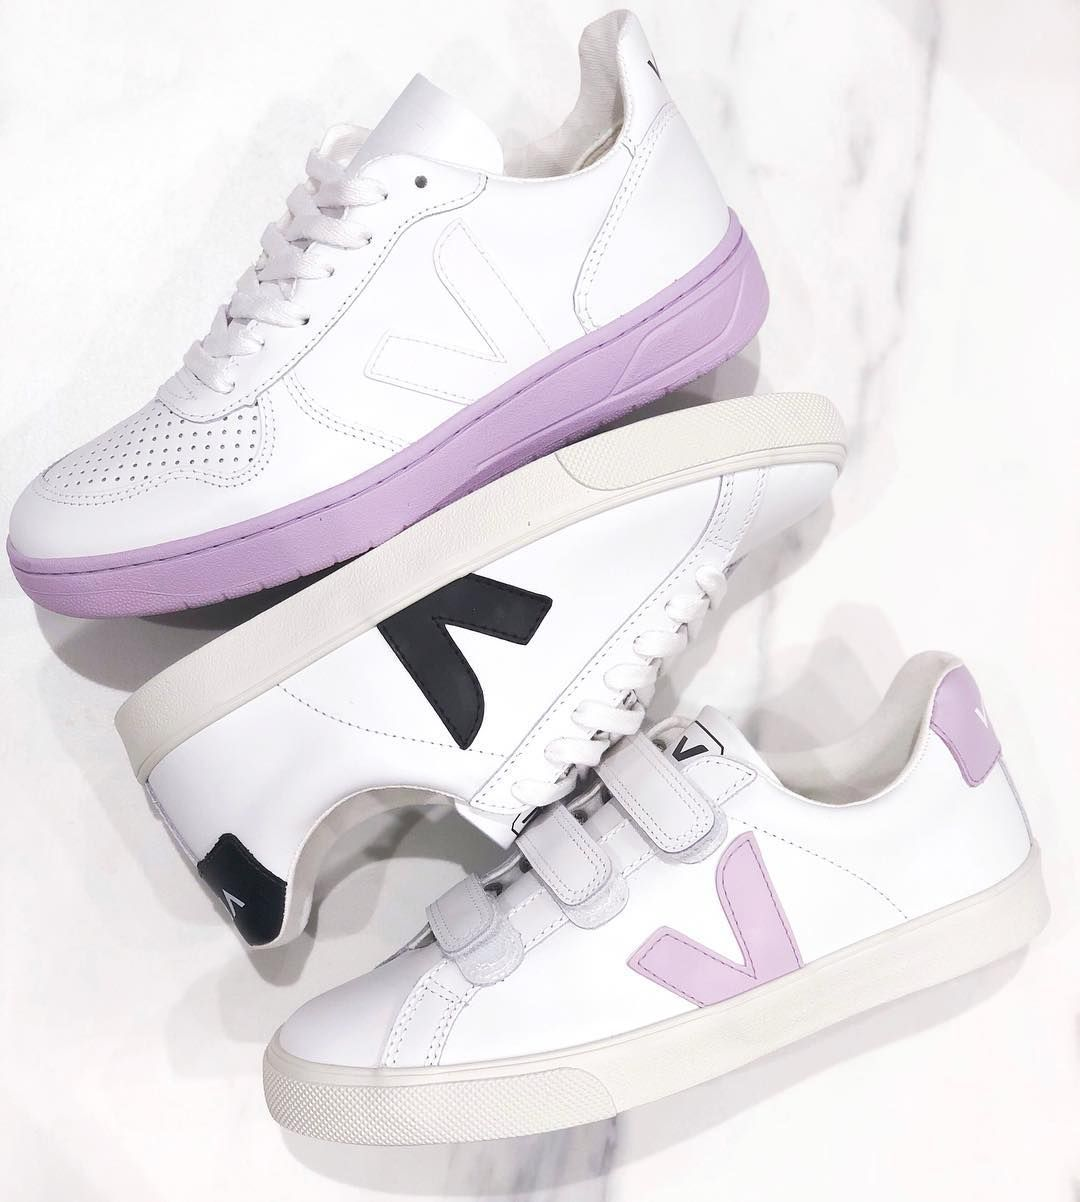 722a1d9200e04 Upgrade your kicks with our V-10 Extra White Lila Sole